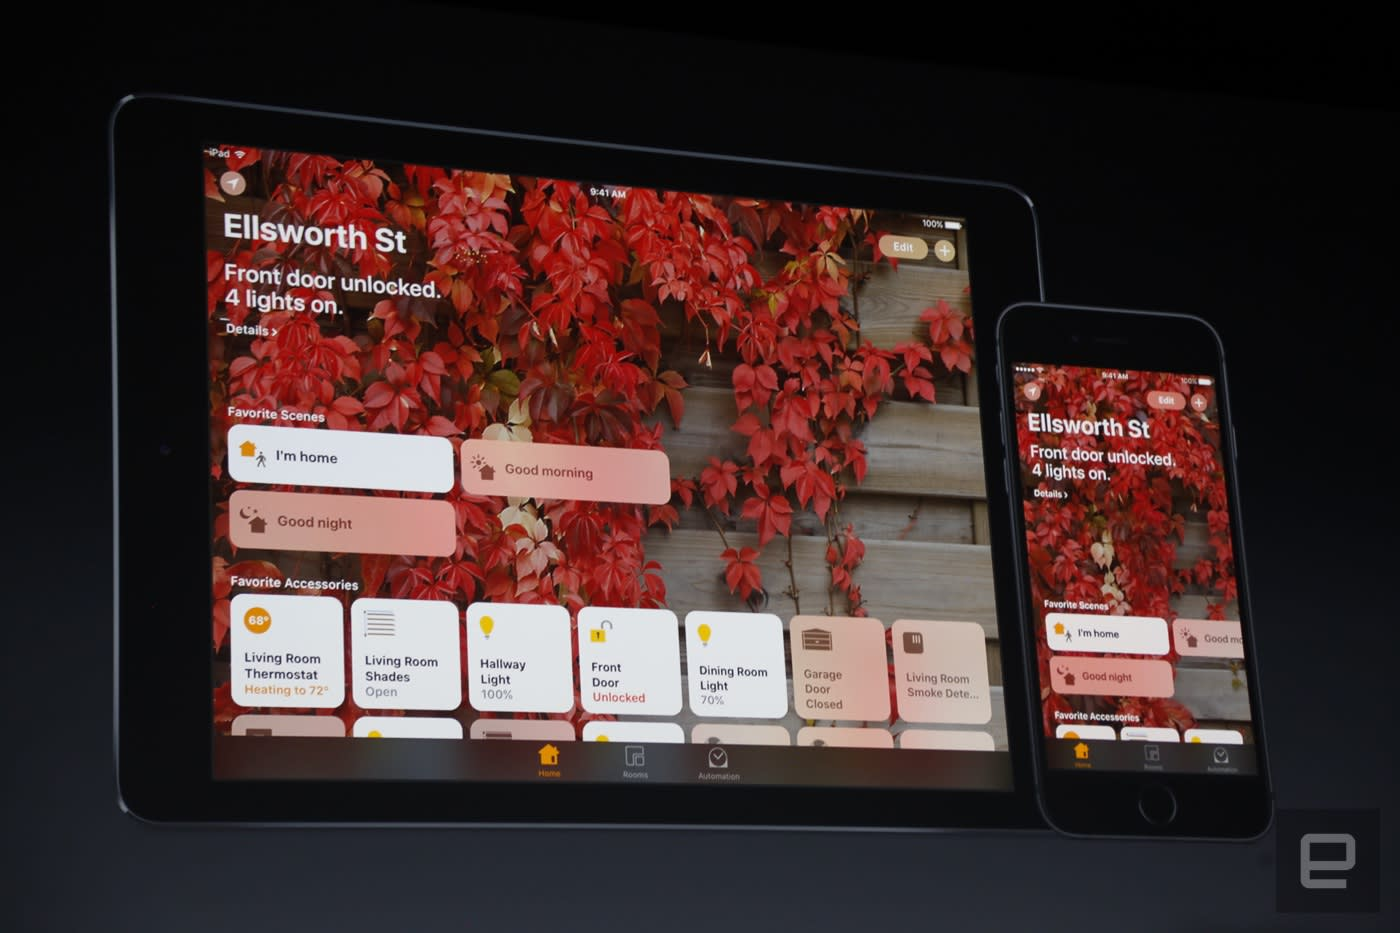 Your iPad can double as a smart home hub with iOS 10